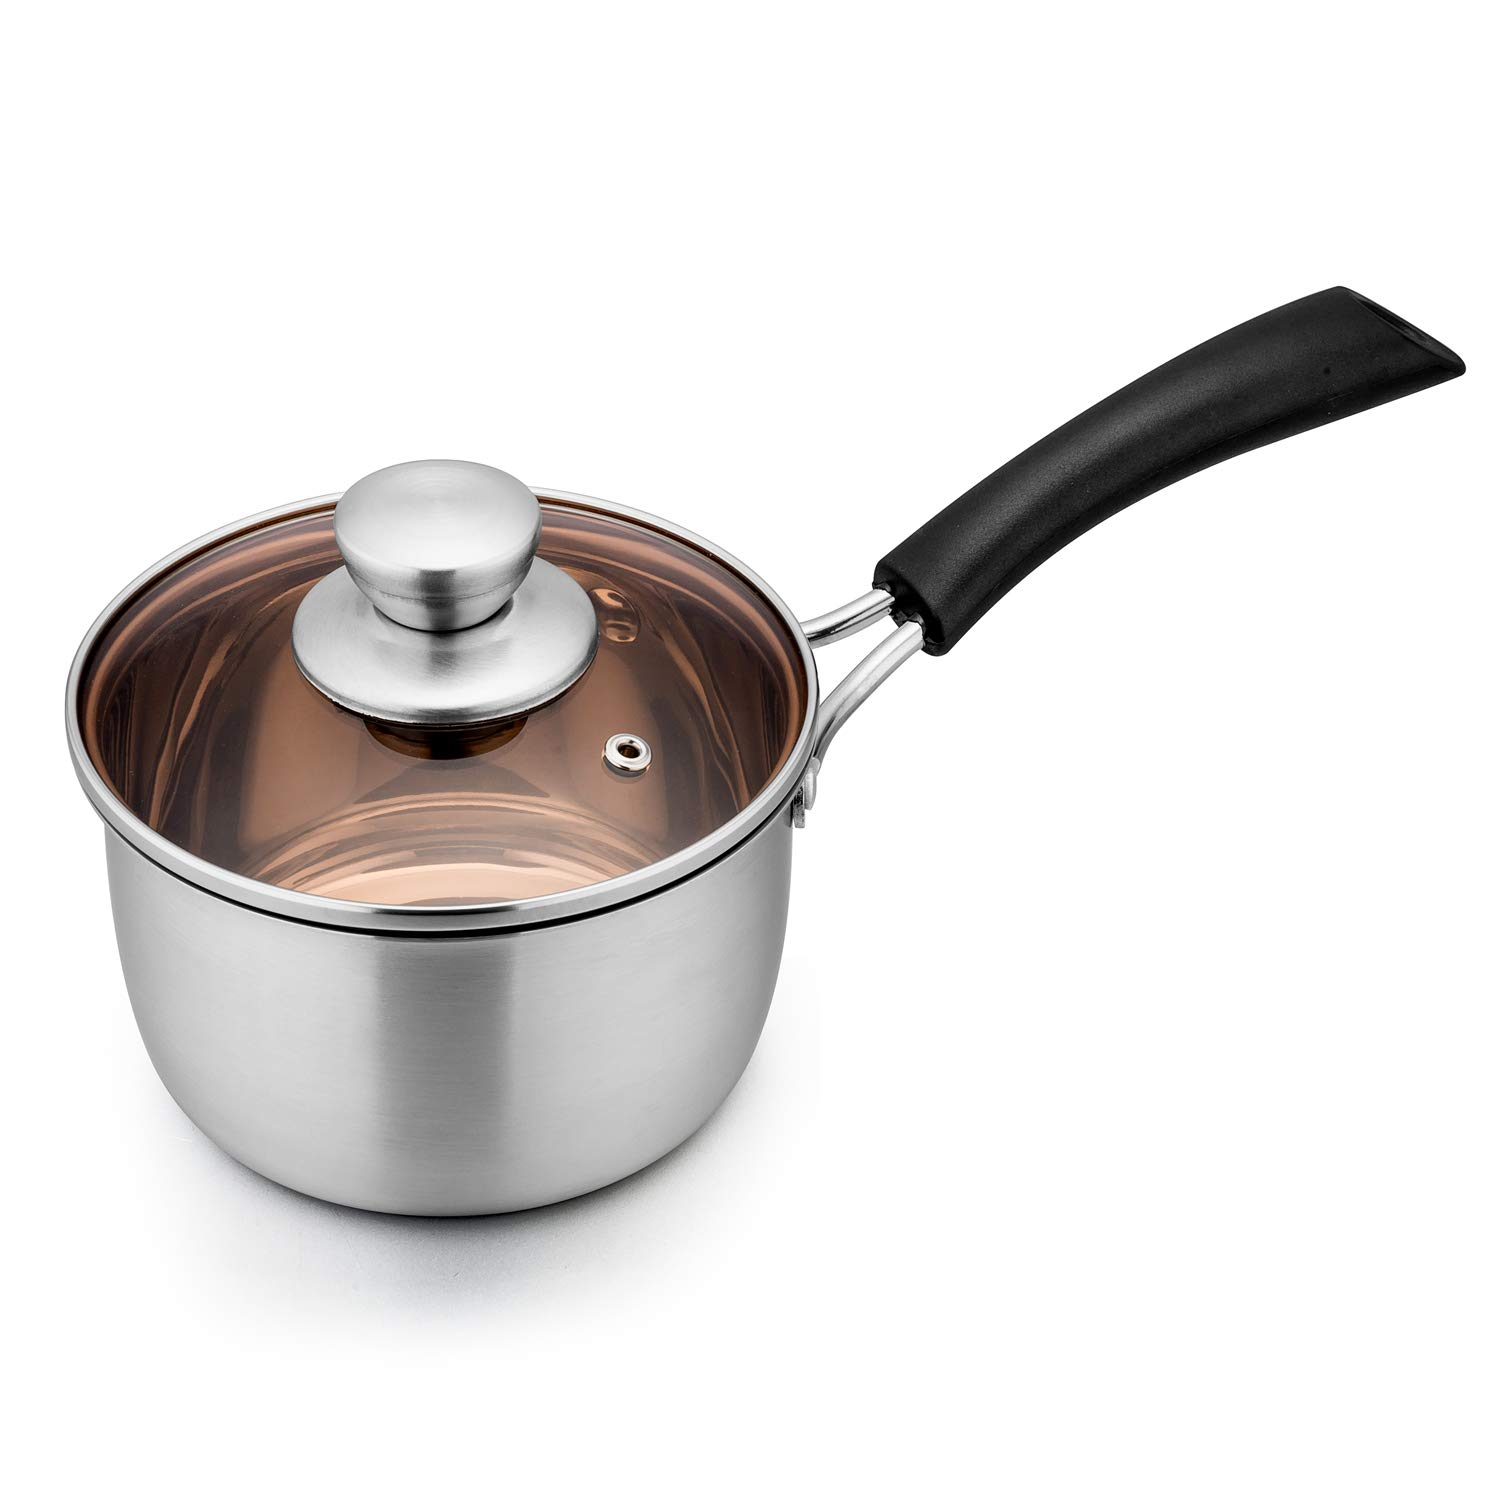 TeamFar 1qt Saucepan, Stainless Steel Sauce Pan with Lid, Milk Pan Cookware Professional with Long Heatproof Handle, Non Toxic & Healthy, Rust Free & Dishwasher Safe by TeamFar